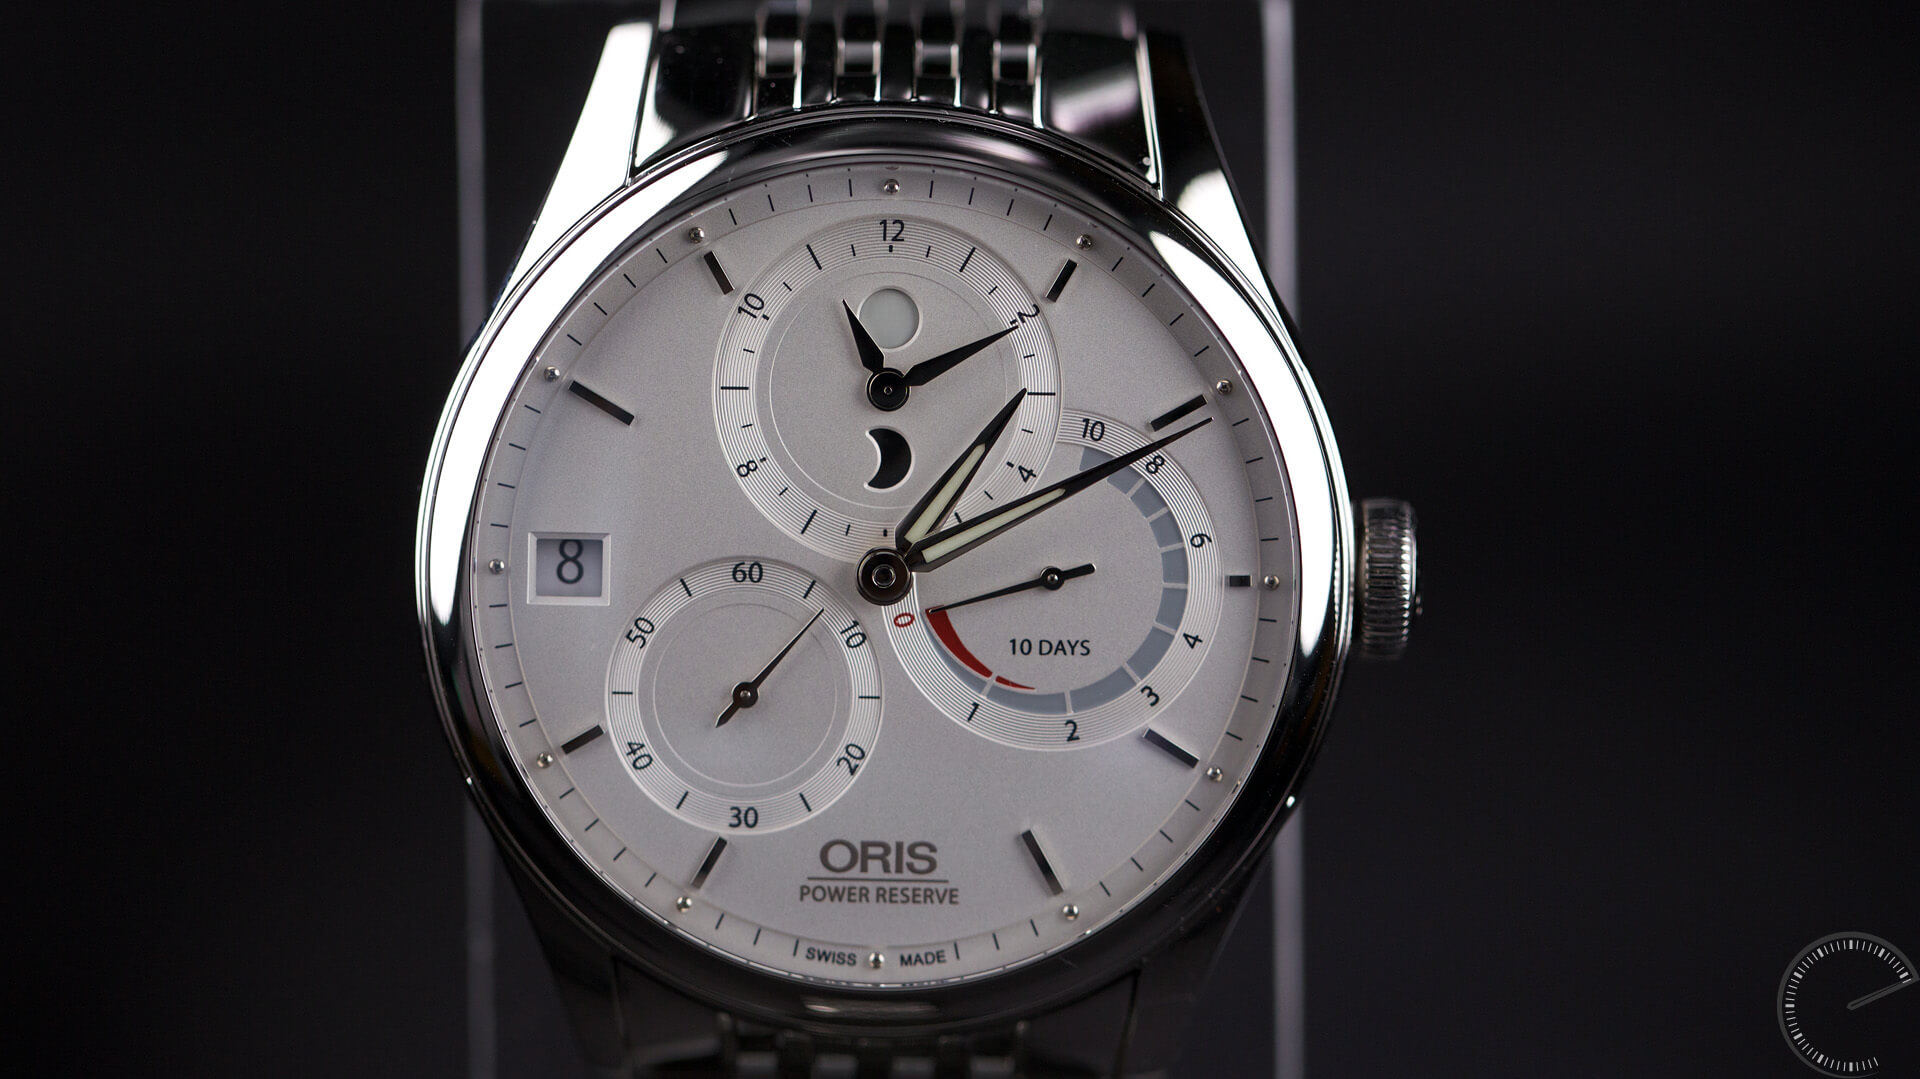 Oris_Artelier_Calibre_112_dial5 - ESCAPEMENT MAGAZINE - watch reviews by Angus Davies